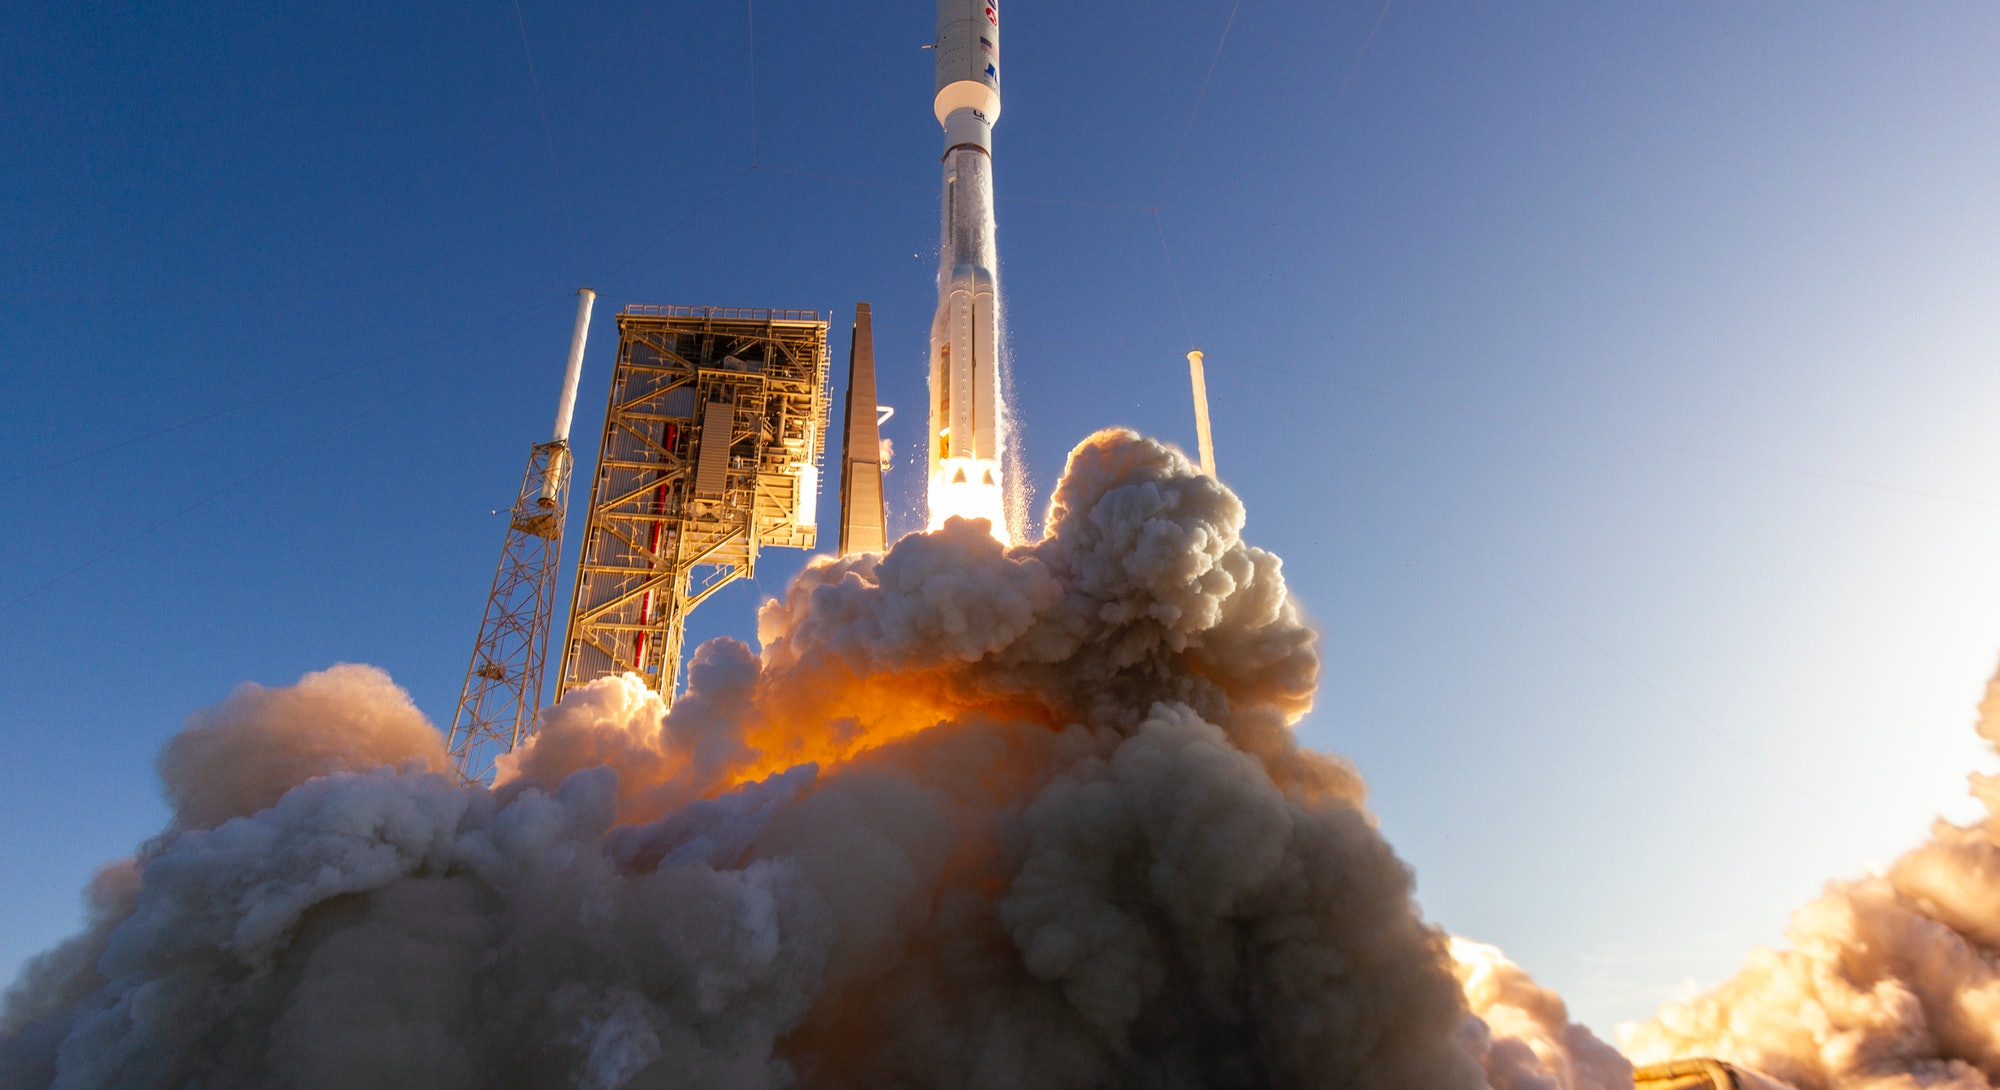 A United Launch Alliance (ULA) Atlas V rocket carrying the Mars 2020 mission with the Perseverance rover lifts off from Space Launch Complex-41 at 7:50 a.m. EDT on July 30, 2020.